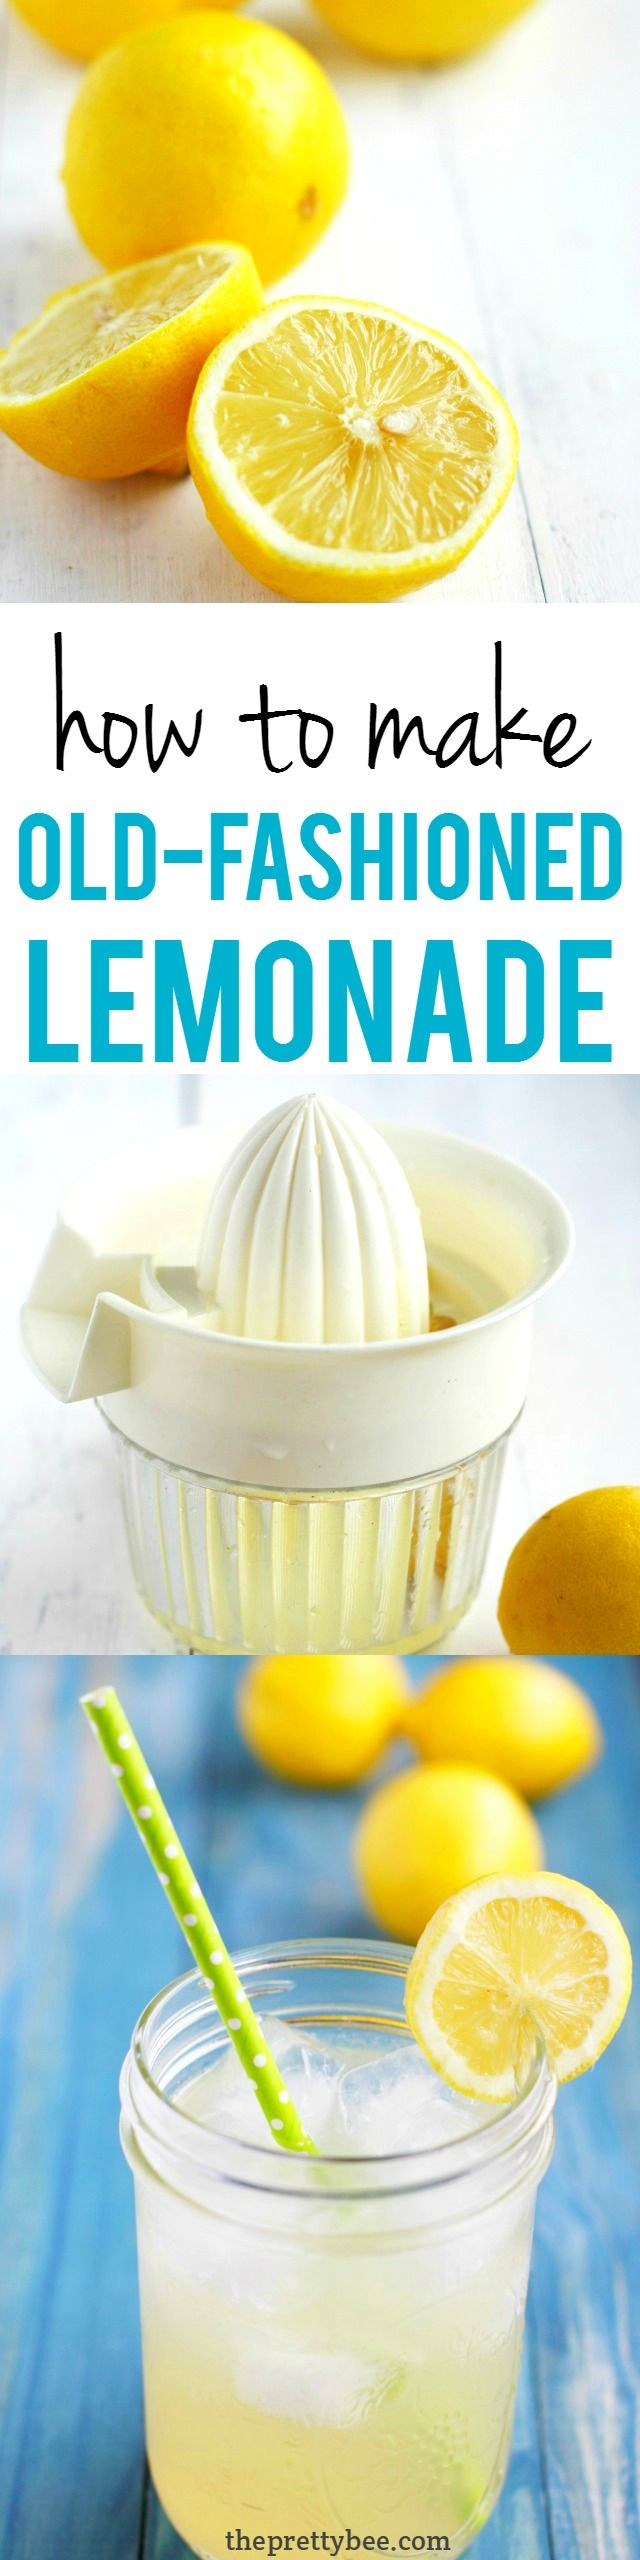 There's nothing like a glass of cold lemonade on a hot summer day! This recipe for old fashioned lemonade is the best!